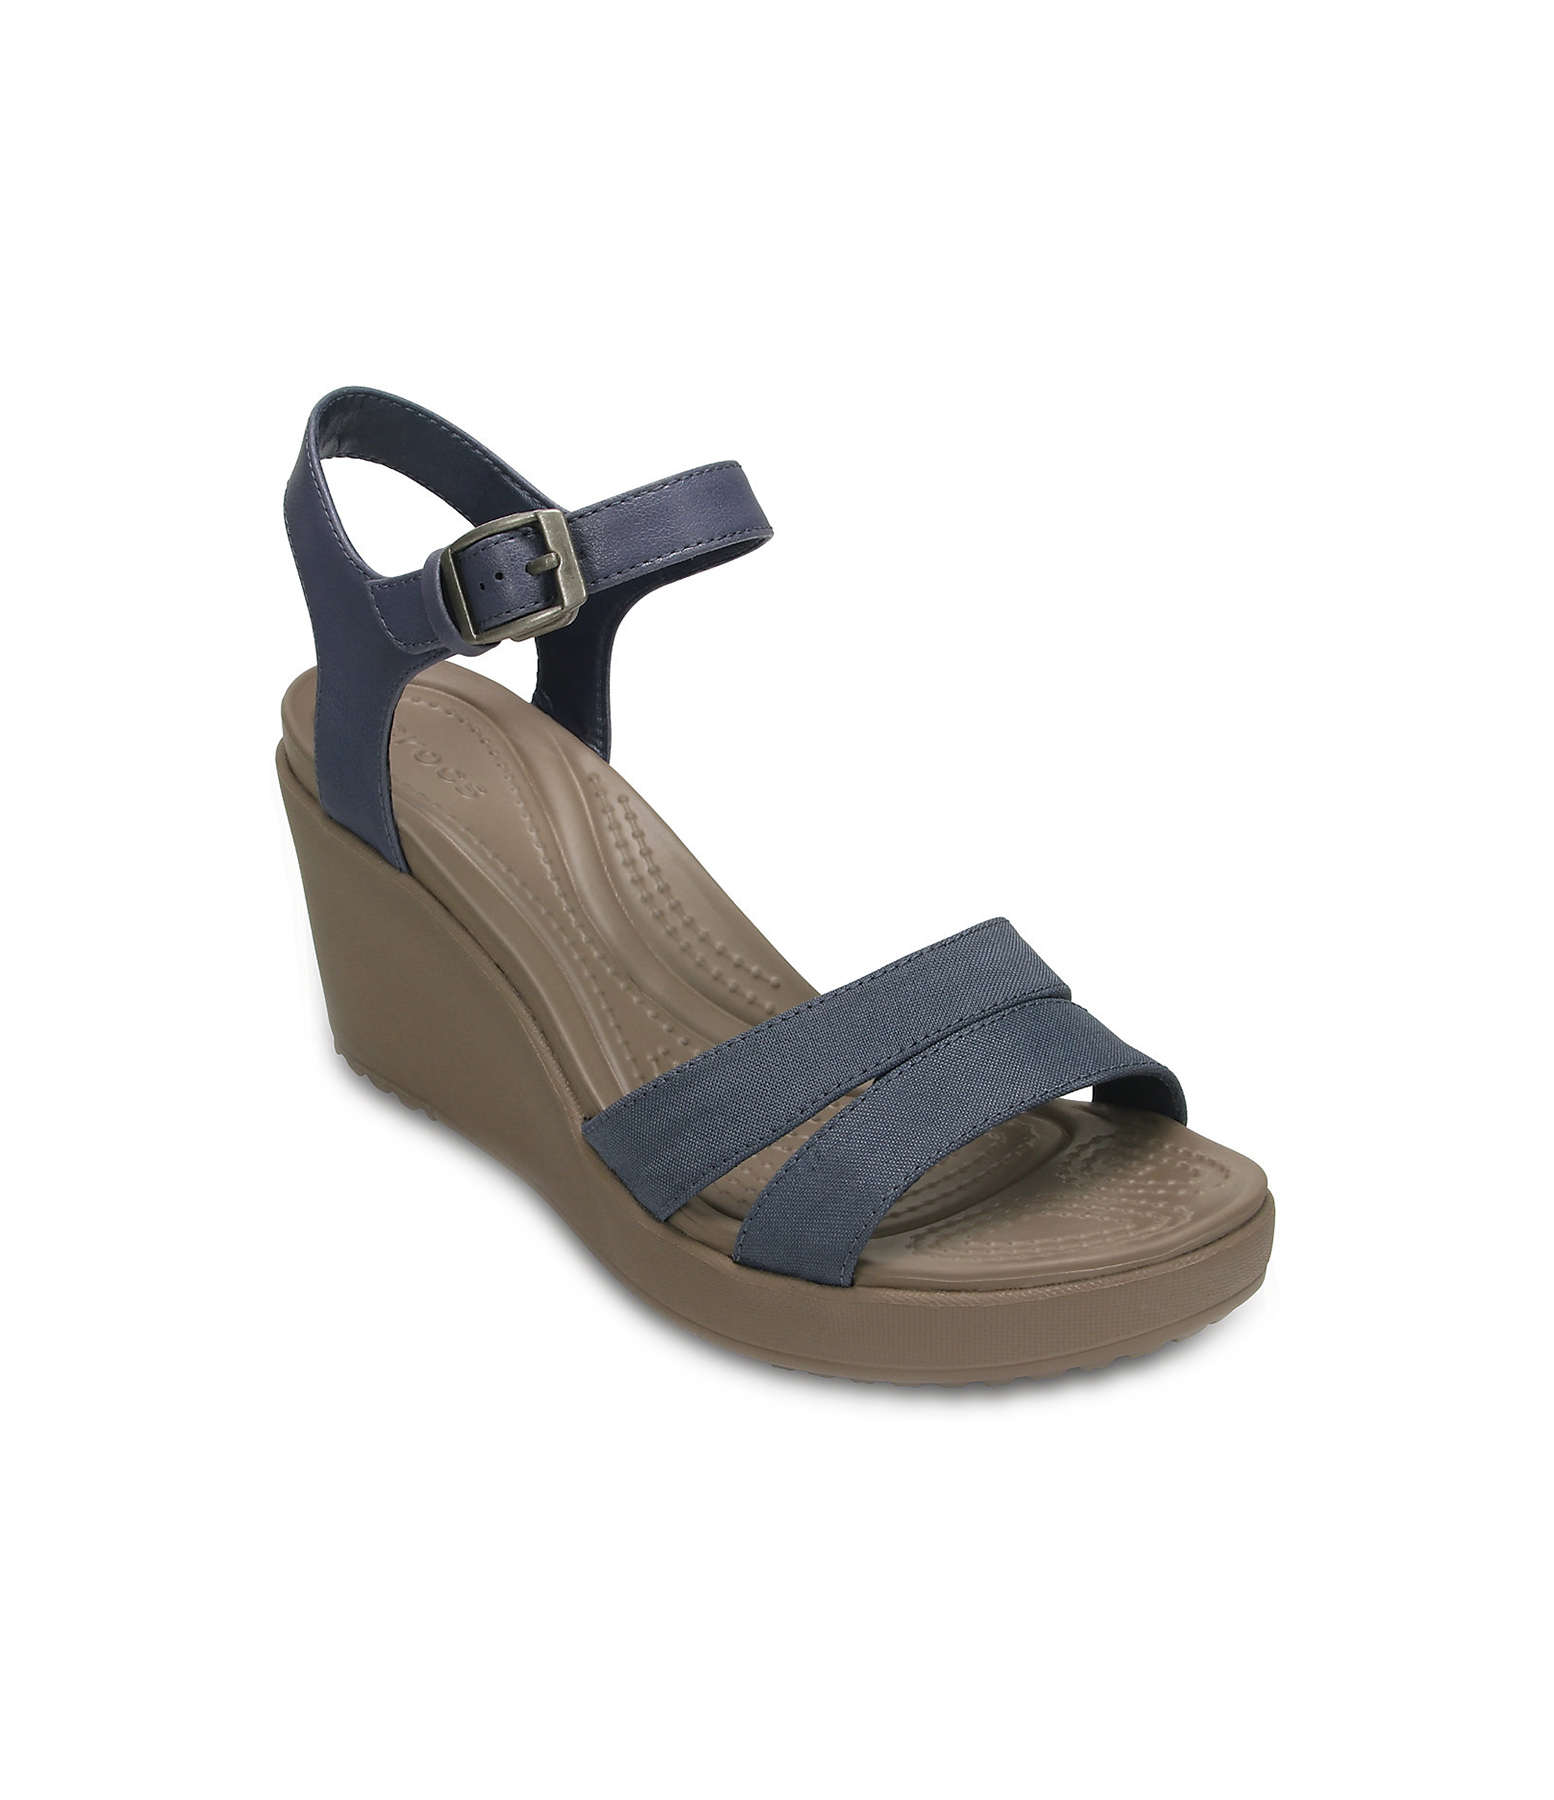 Crocs Leigh II Ankle Strap Wedge Sandal